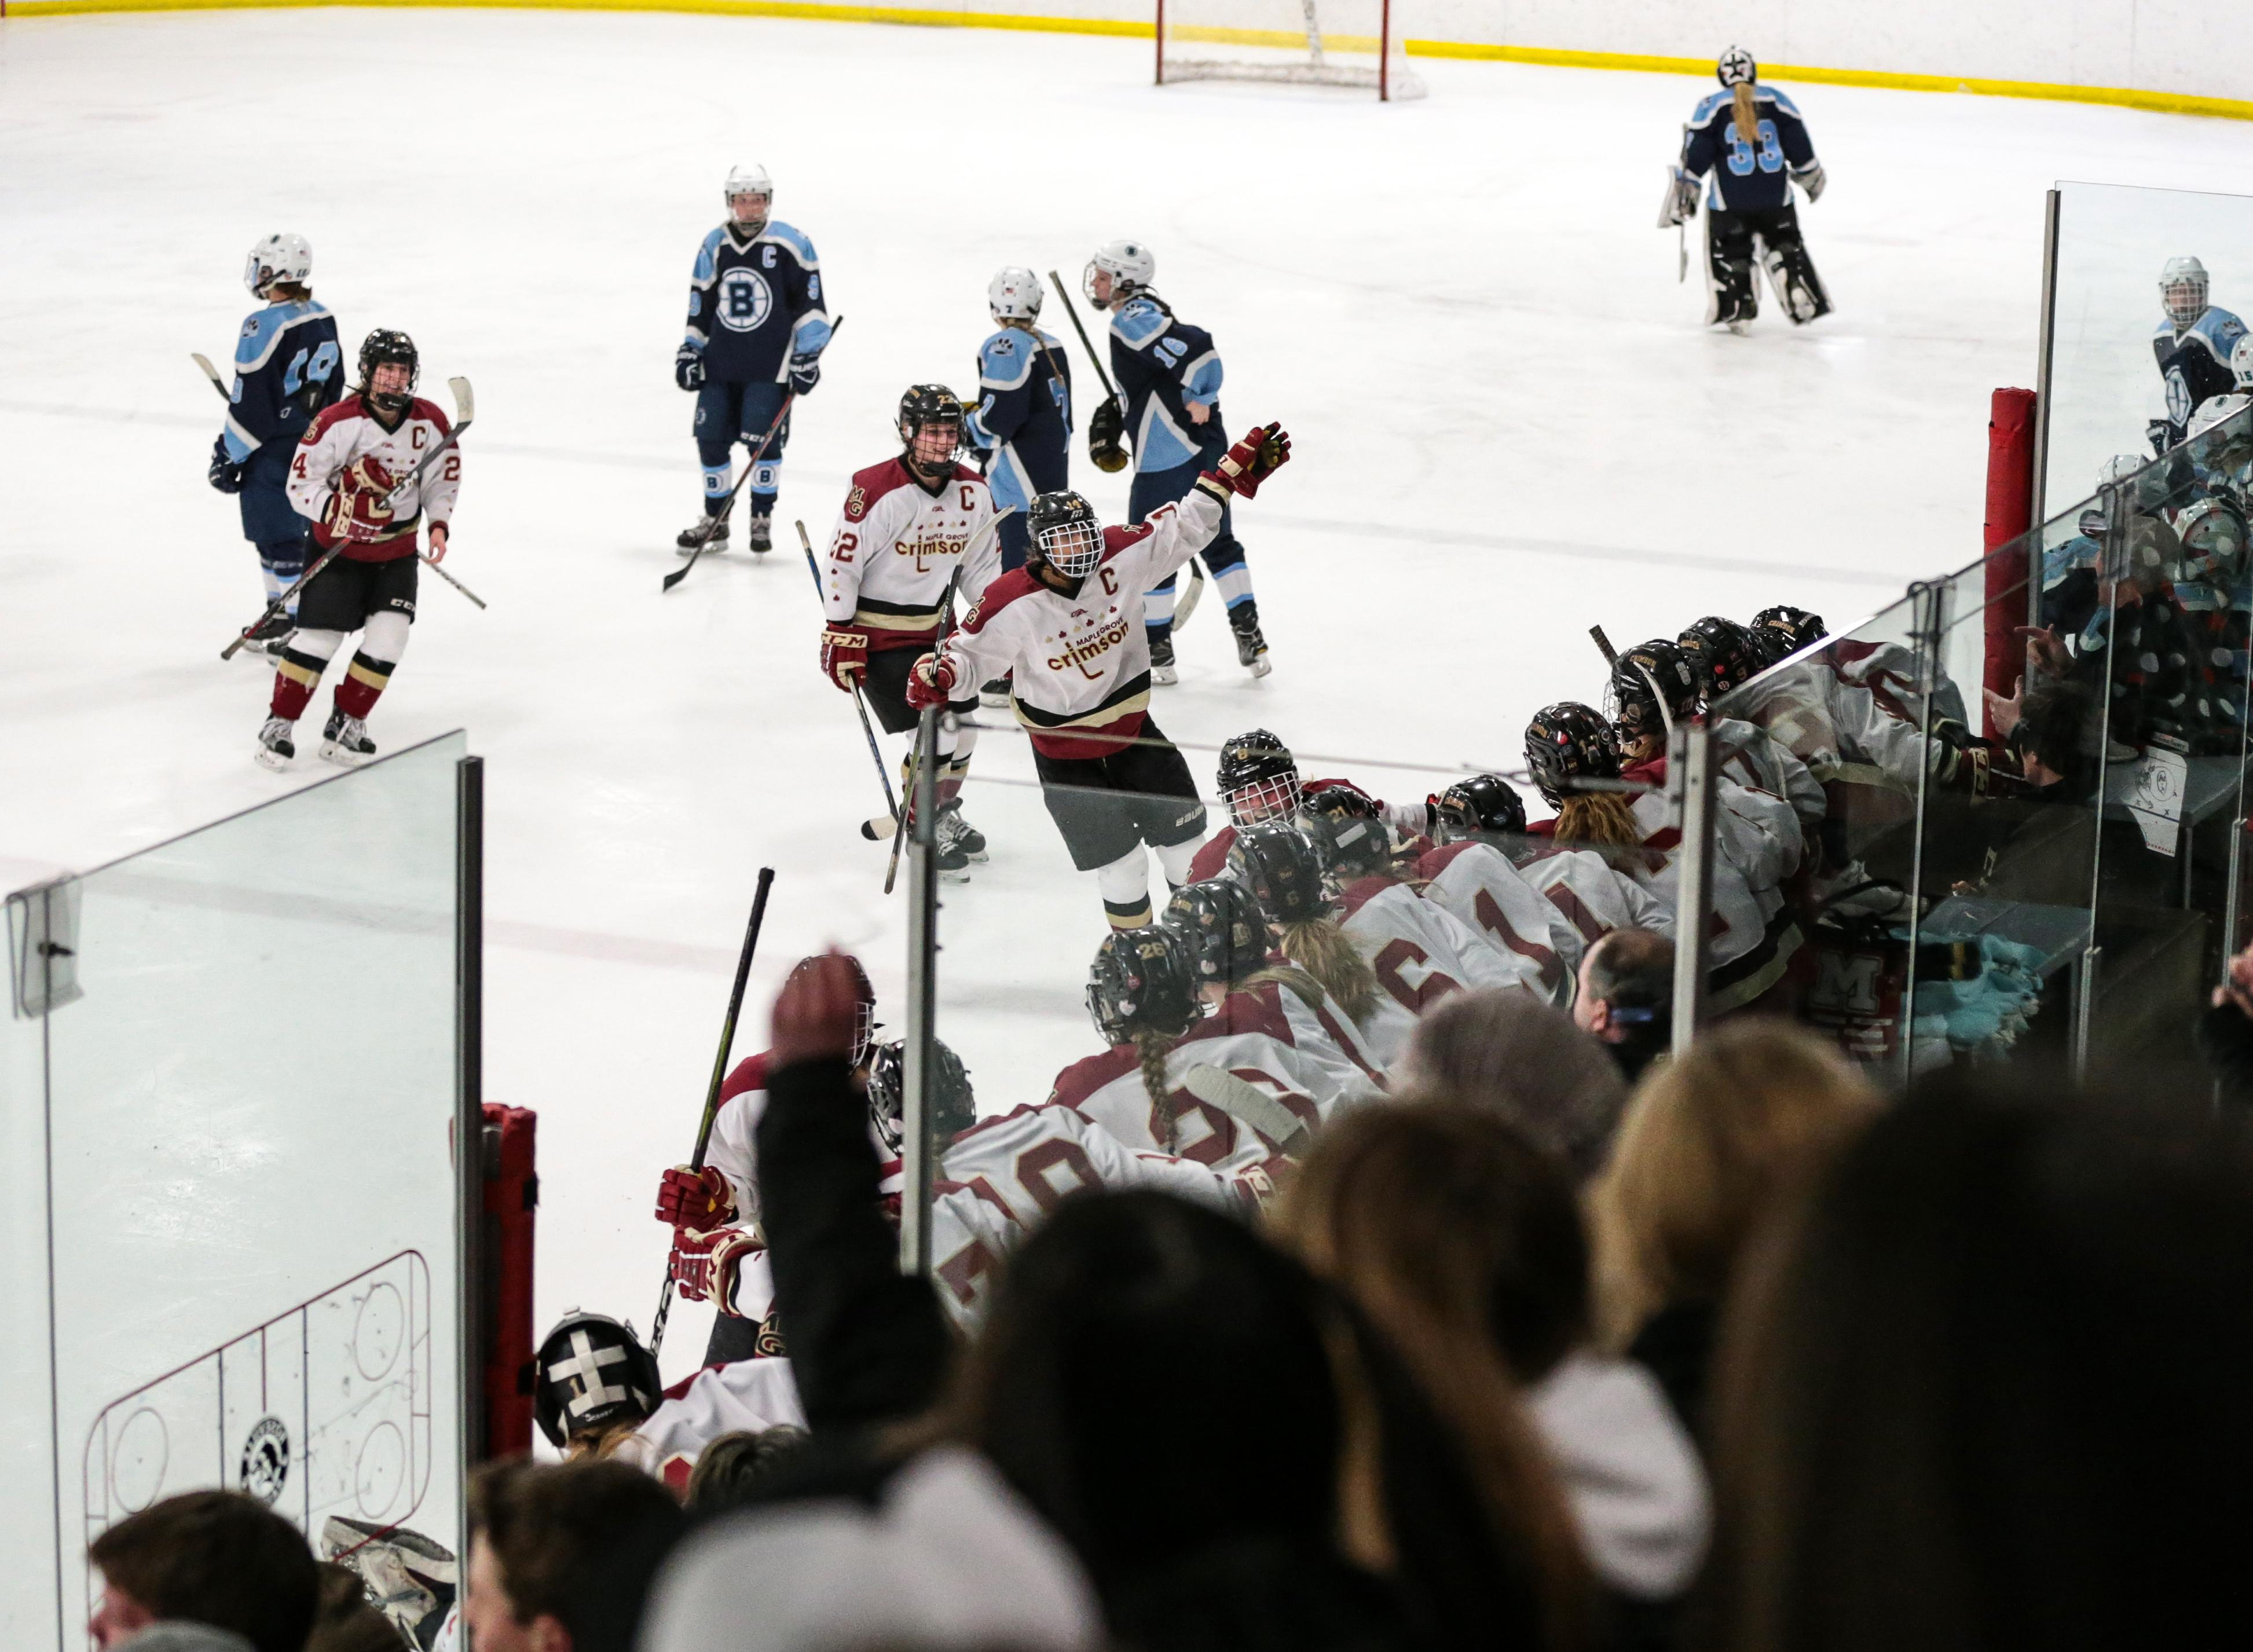 The Maple Grove bench celebrates Lauren Stenslie's empty-net goal with 31 seconds remaining in the game. Photo by Cheryl A. Myers, SportsEngine